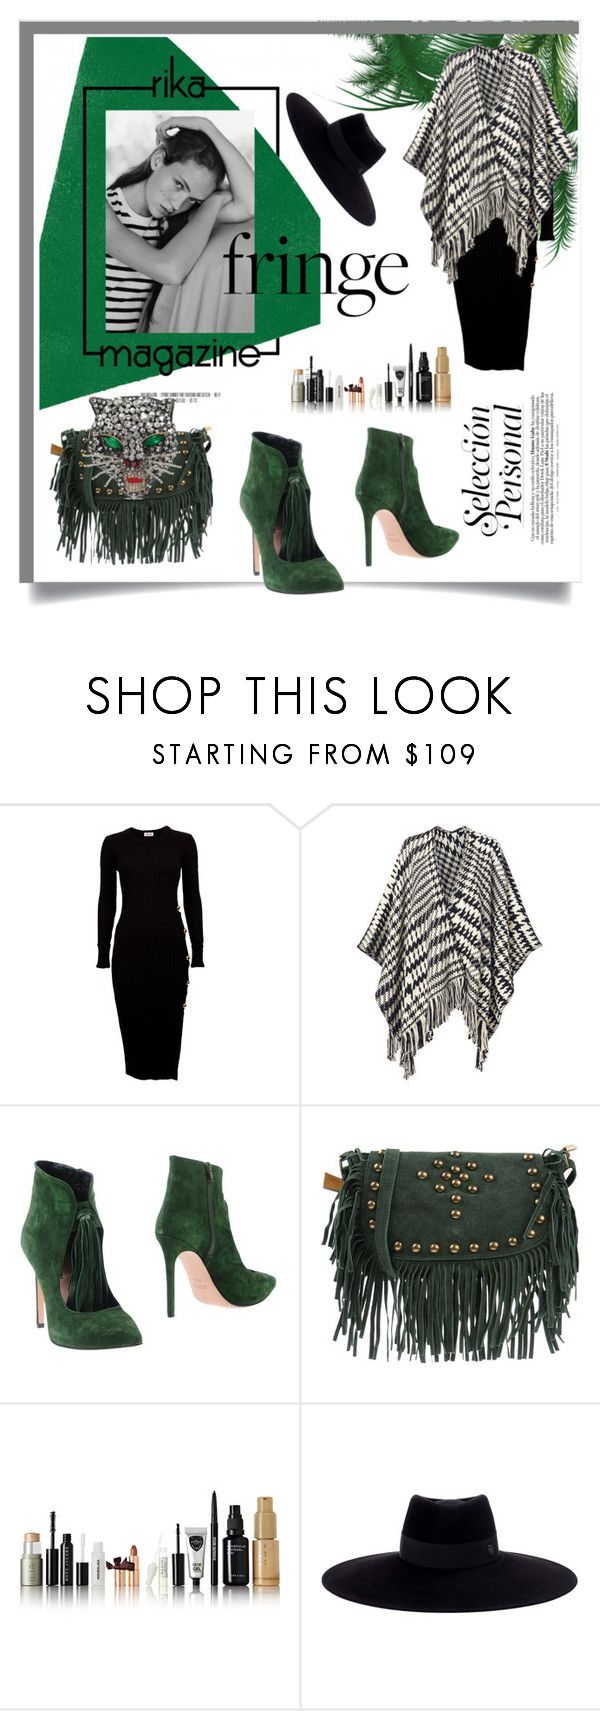 """""""Shimmy Shimmy: Fringe"""" by kari-c ❤ liked on Polyvore featuring Rika, Pooltrend, Anna F., Studio Moda, Maison Michel, Gucci and fringe"""